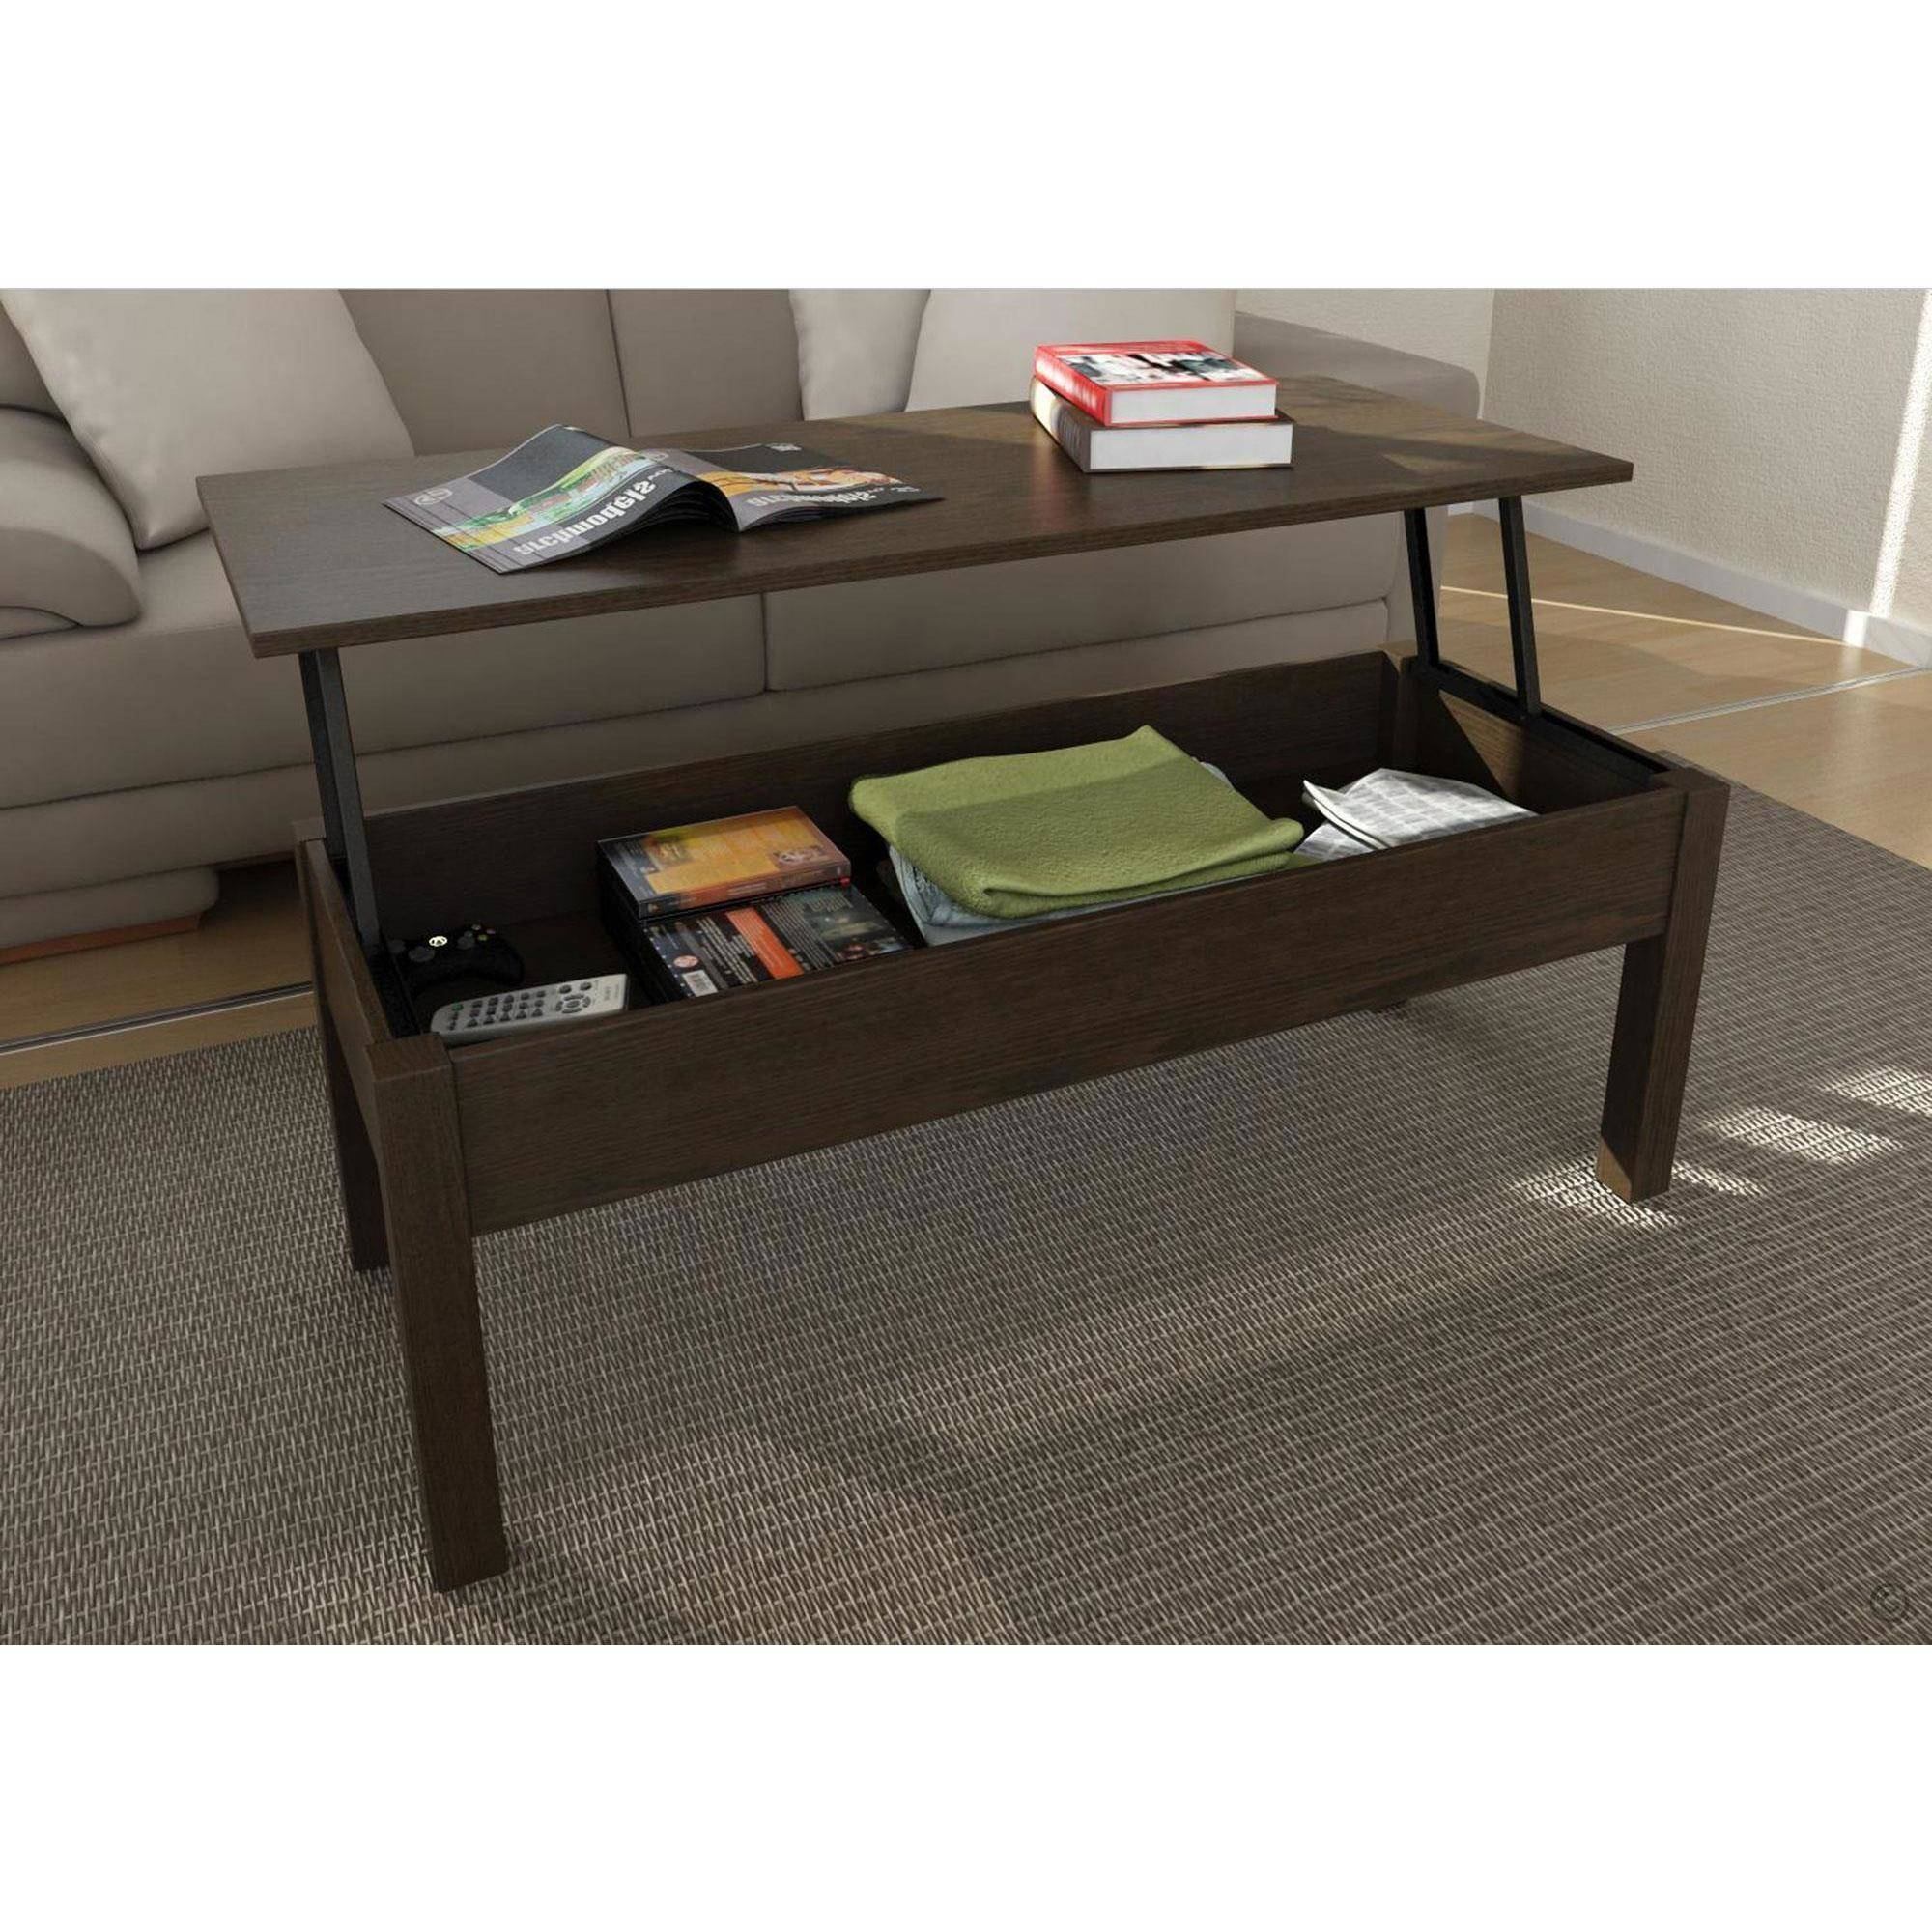 Mainstays Lift-Top Coffee Table, Multiple Colors - Walmart in Lift Top Coffee Table Furniture (Image 24 of 30)